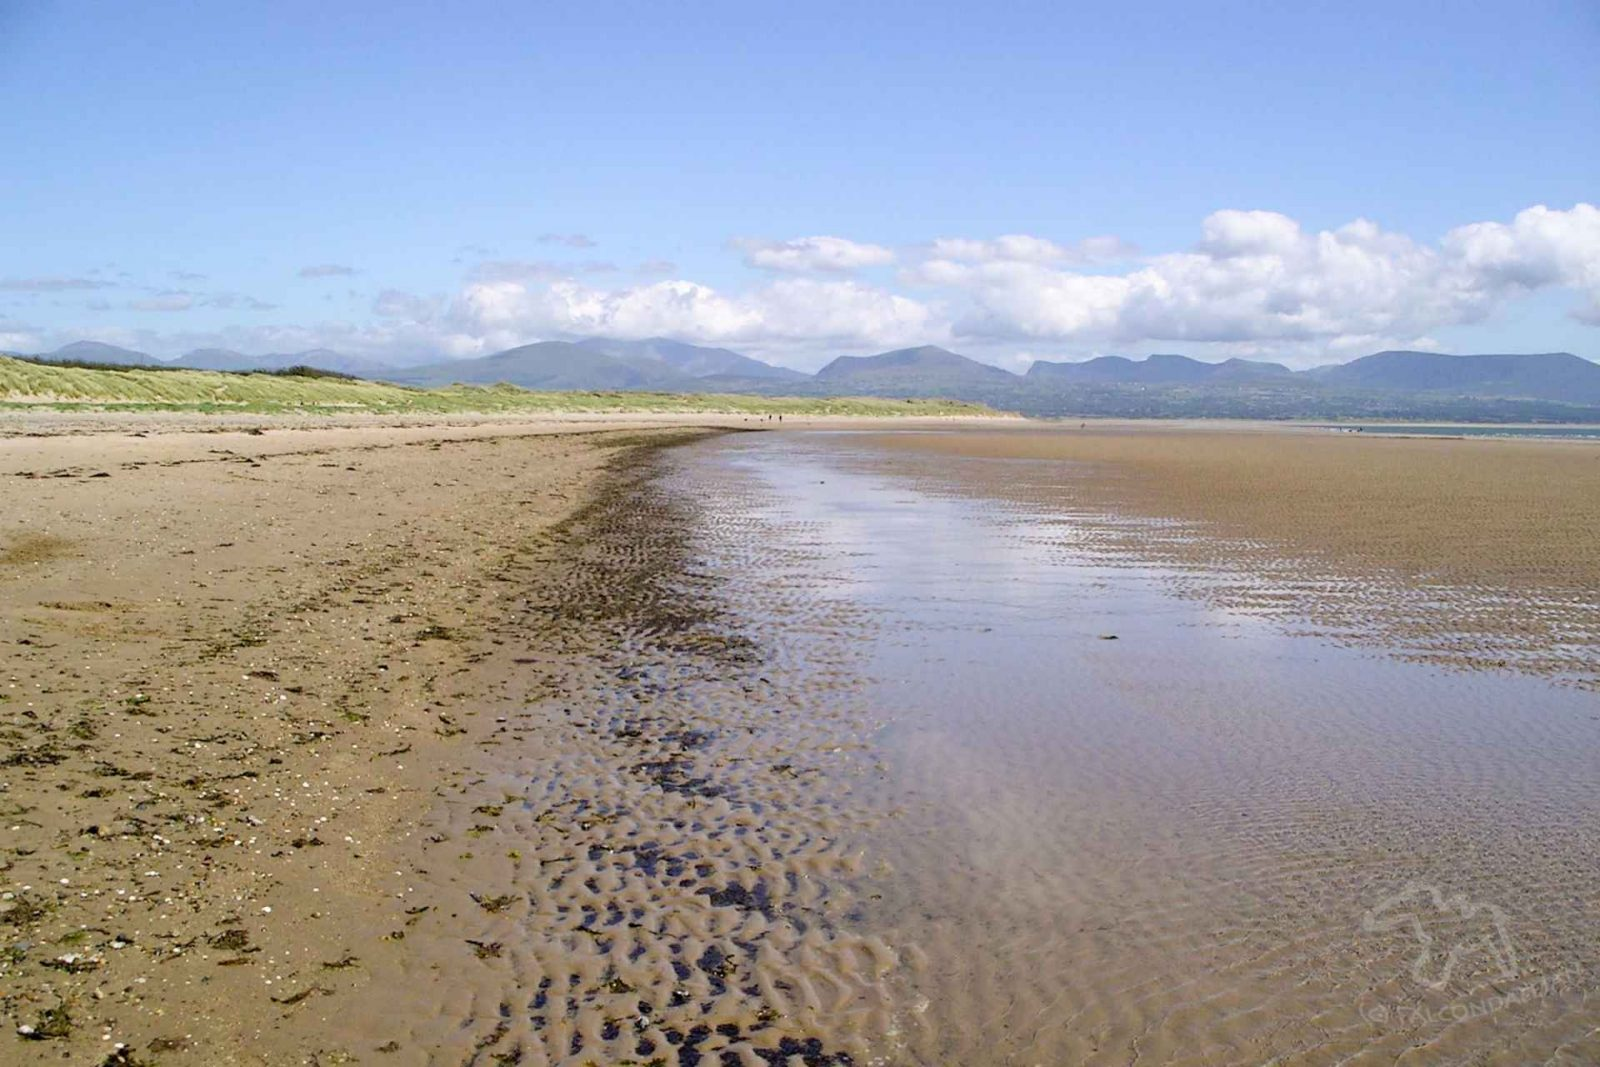 Ideas and tips for a vacation that's suitable for sensitive people. Where could we take an anxious teenager or child on holiday? Plan calmer family travel. Image description: large empty beach with blue sky and ripples.